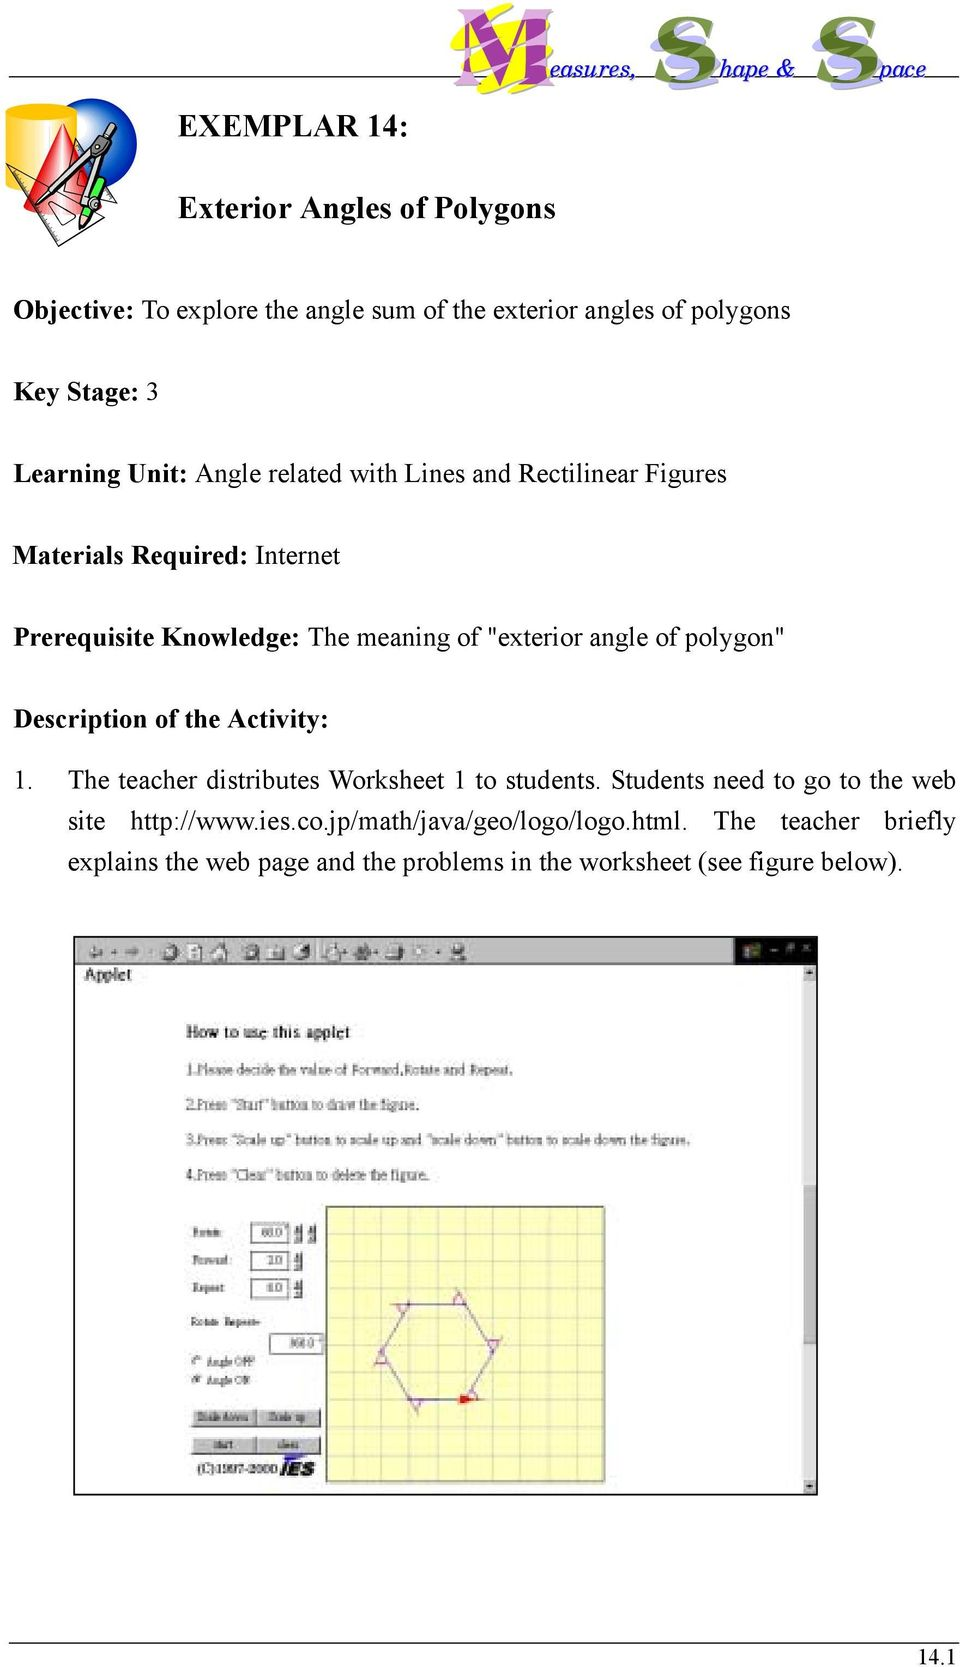 Exterior Angles Of Polygons Pdf